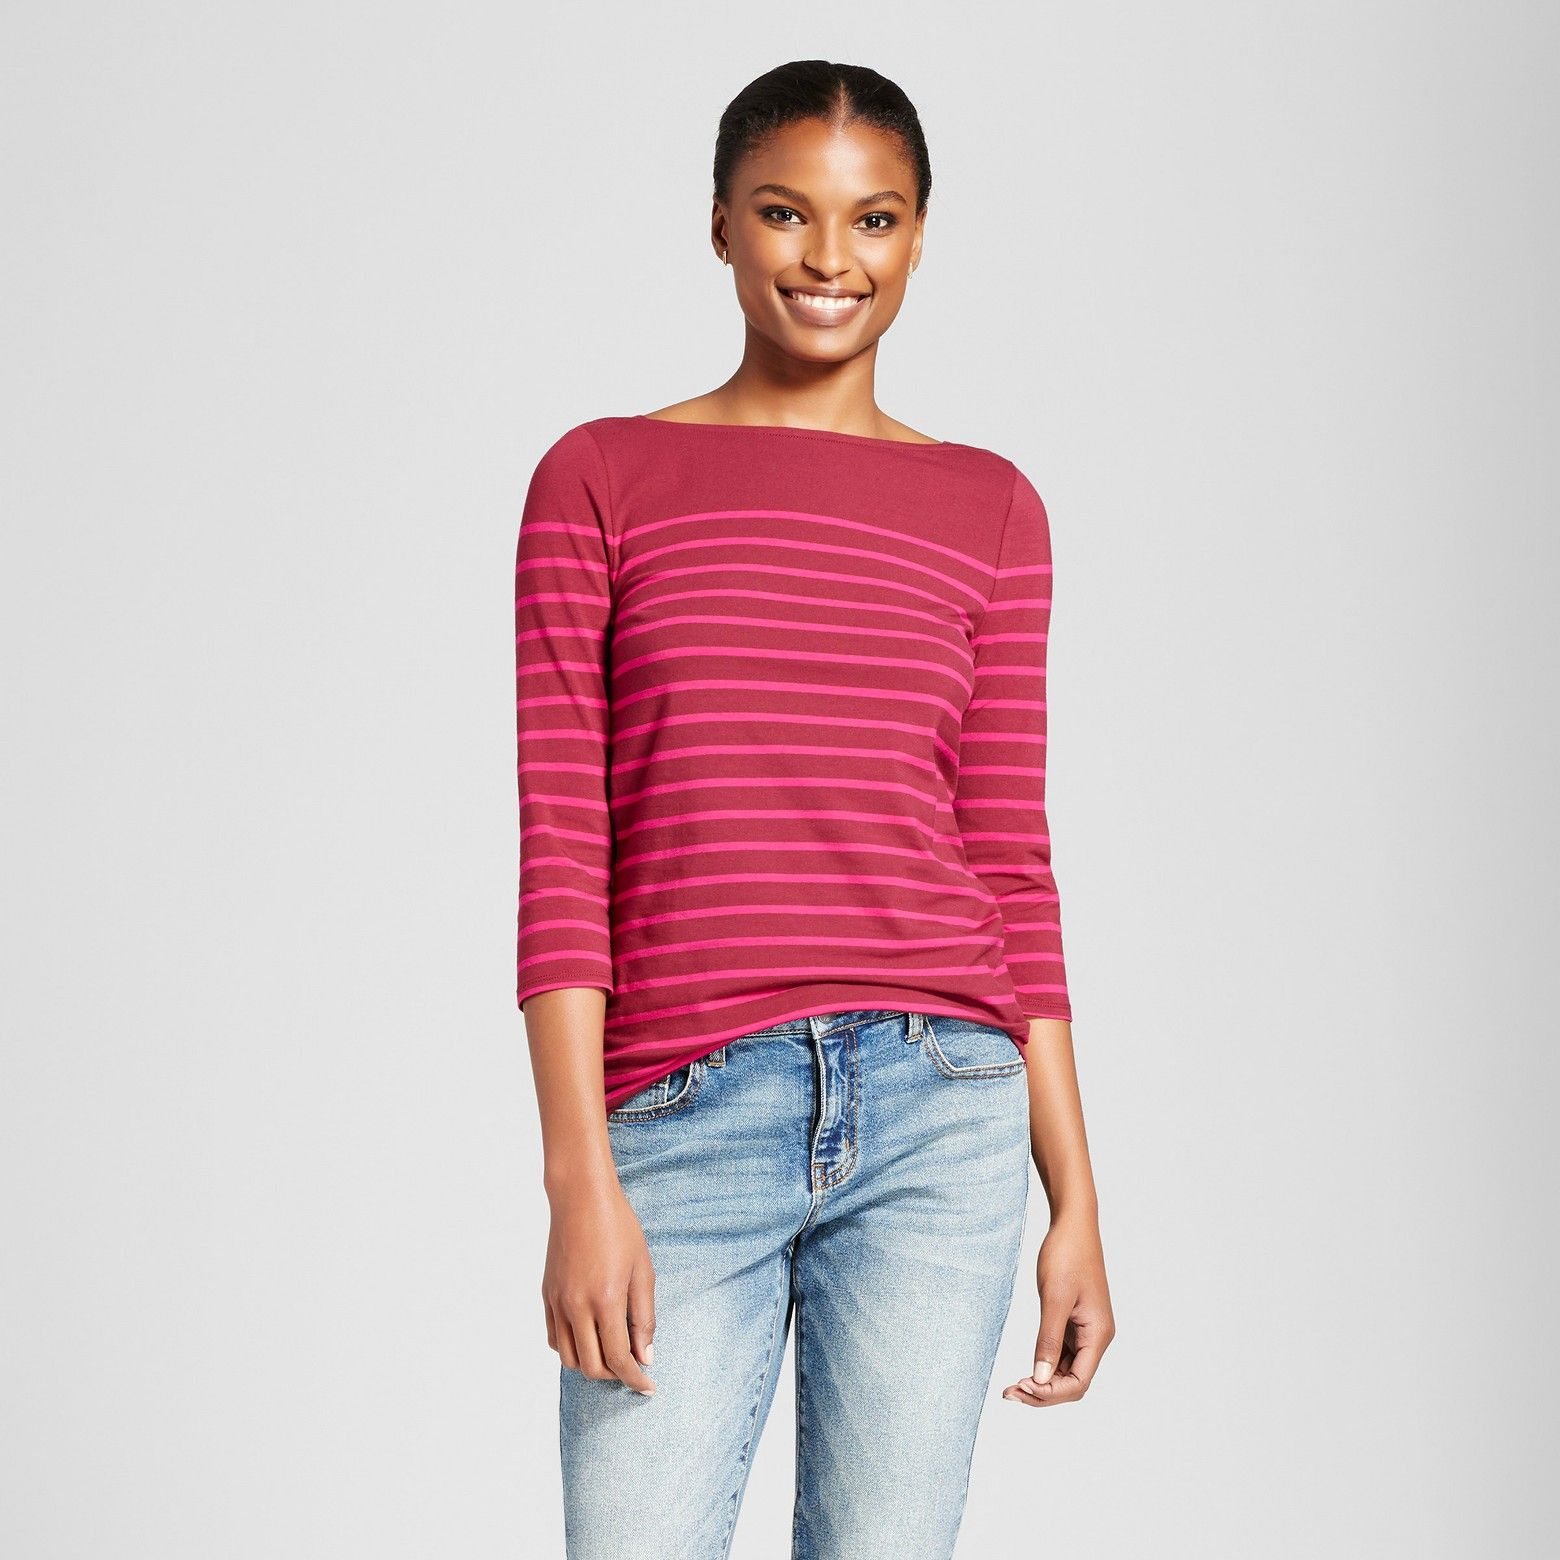 8f808b43ed0f0 Women s Striped 3 4 Sleeve Boatneck T-Shirt - A New Day™   Target ...